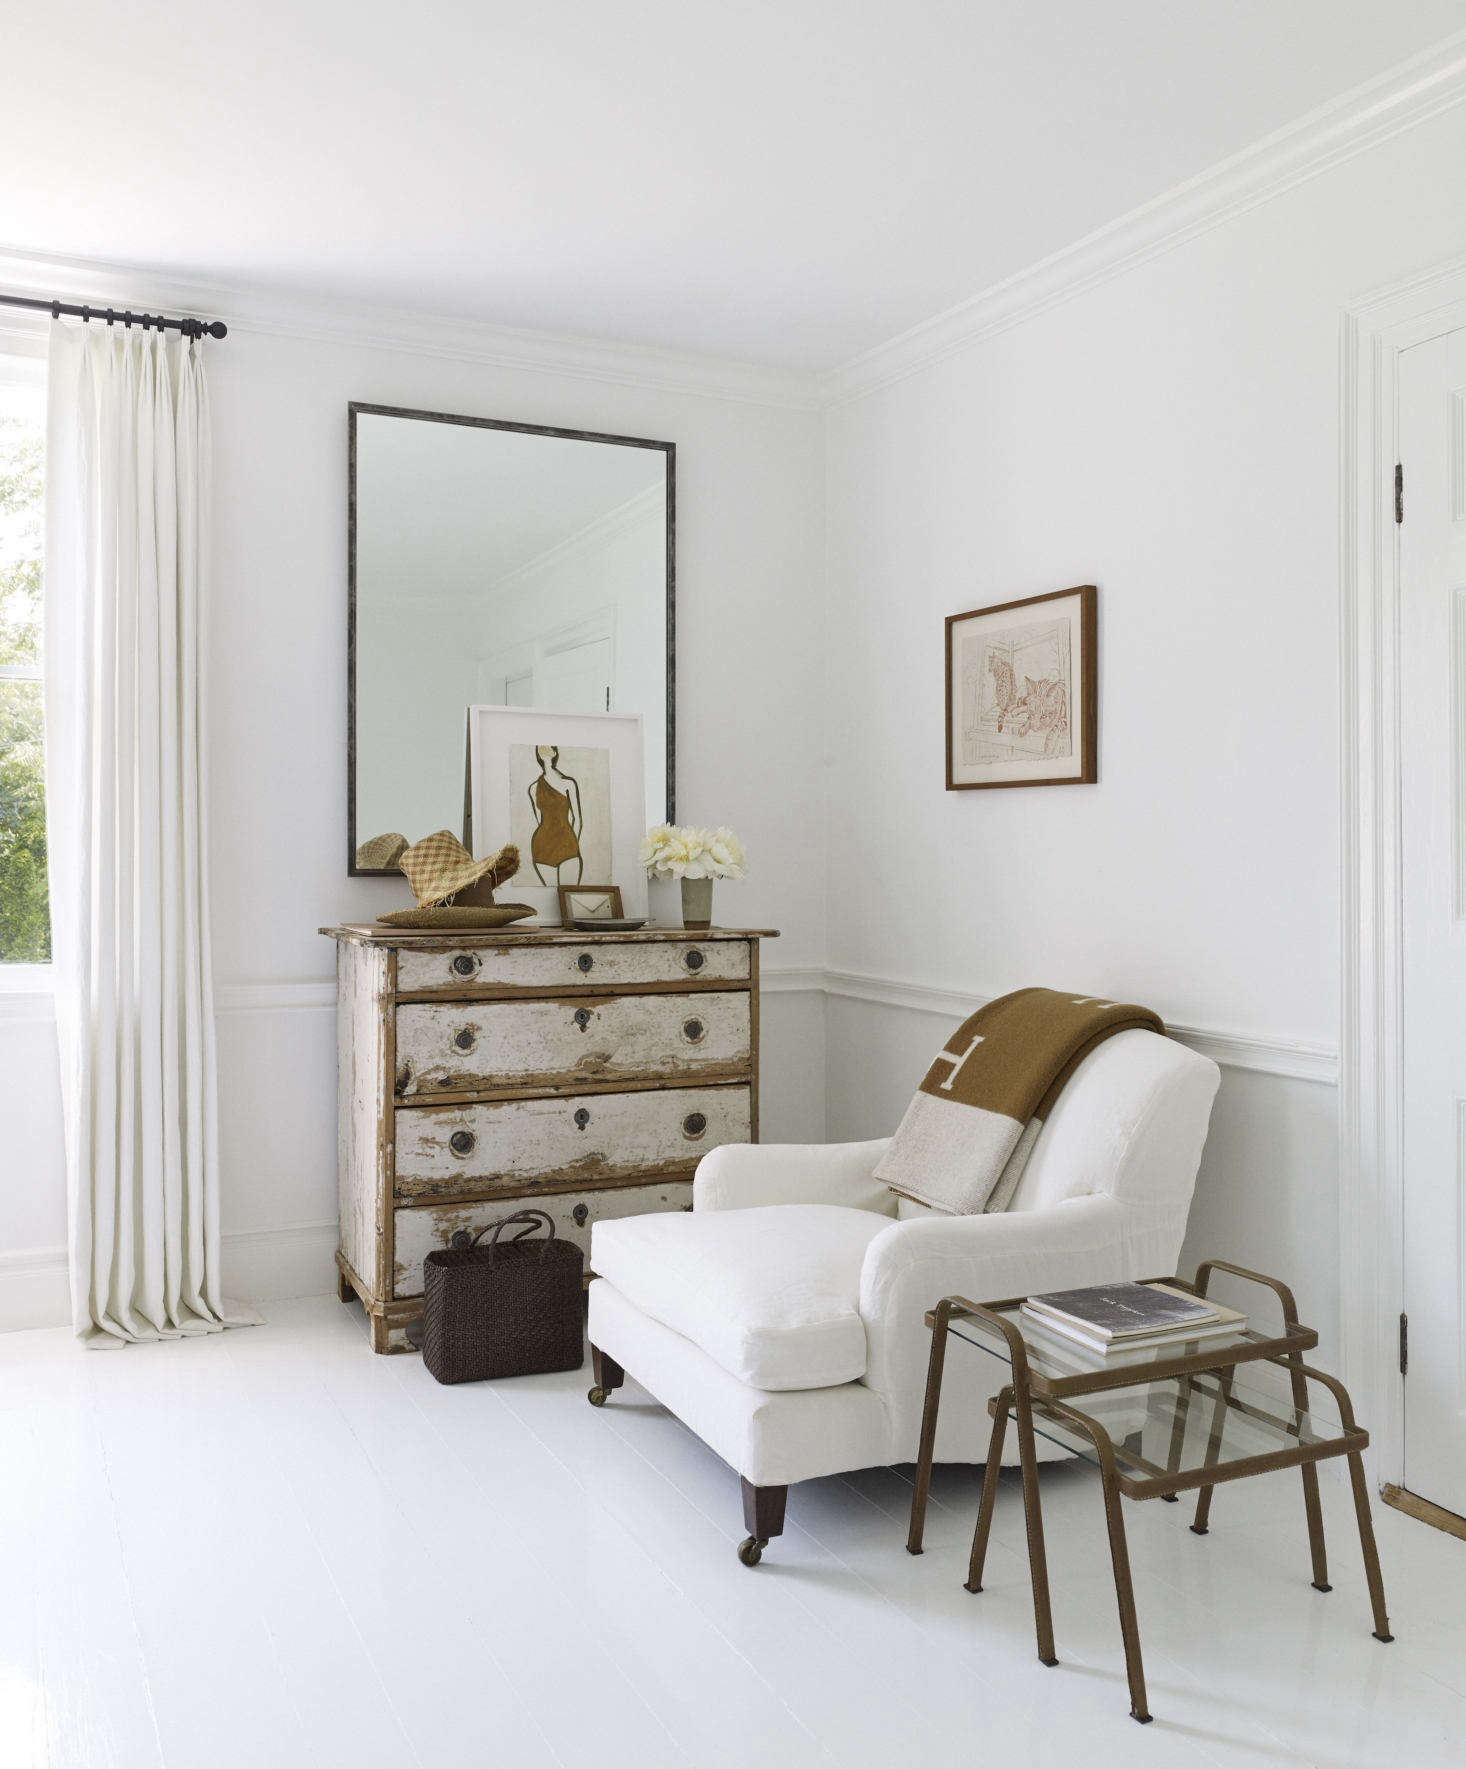 An antique chest from Bloom and an armchair from Ralph Lauren Home. The floor is painted in a high-gloss white enamel from Benjamin Moore.